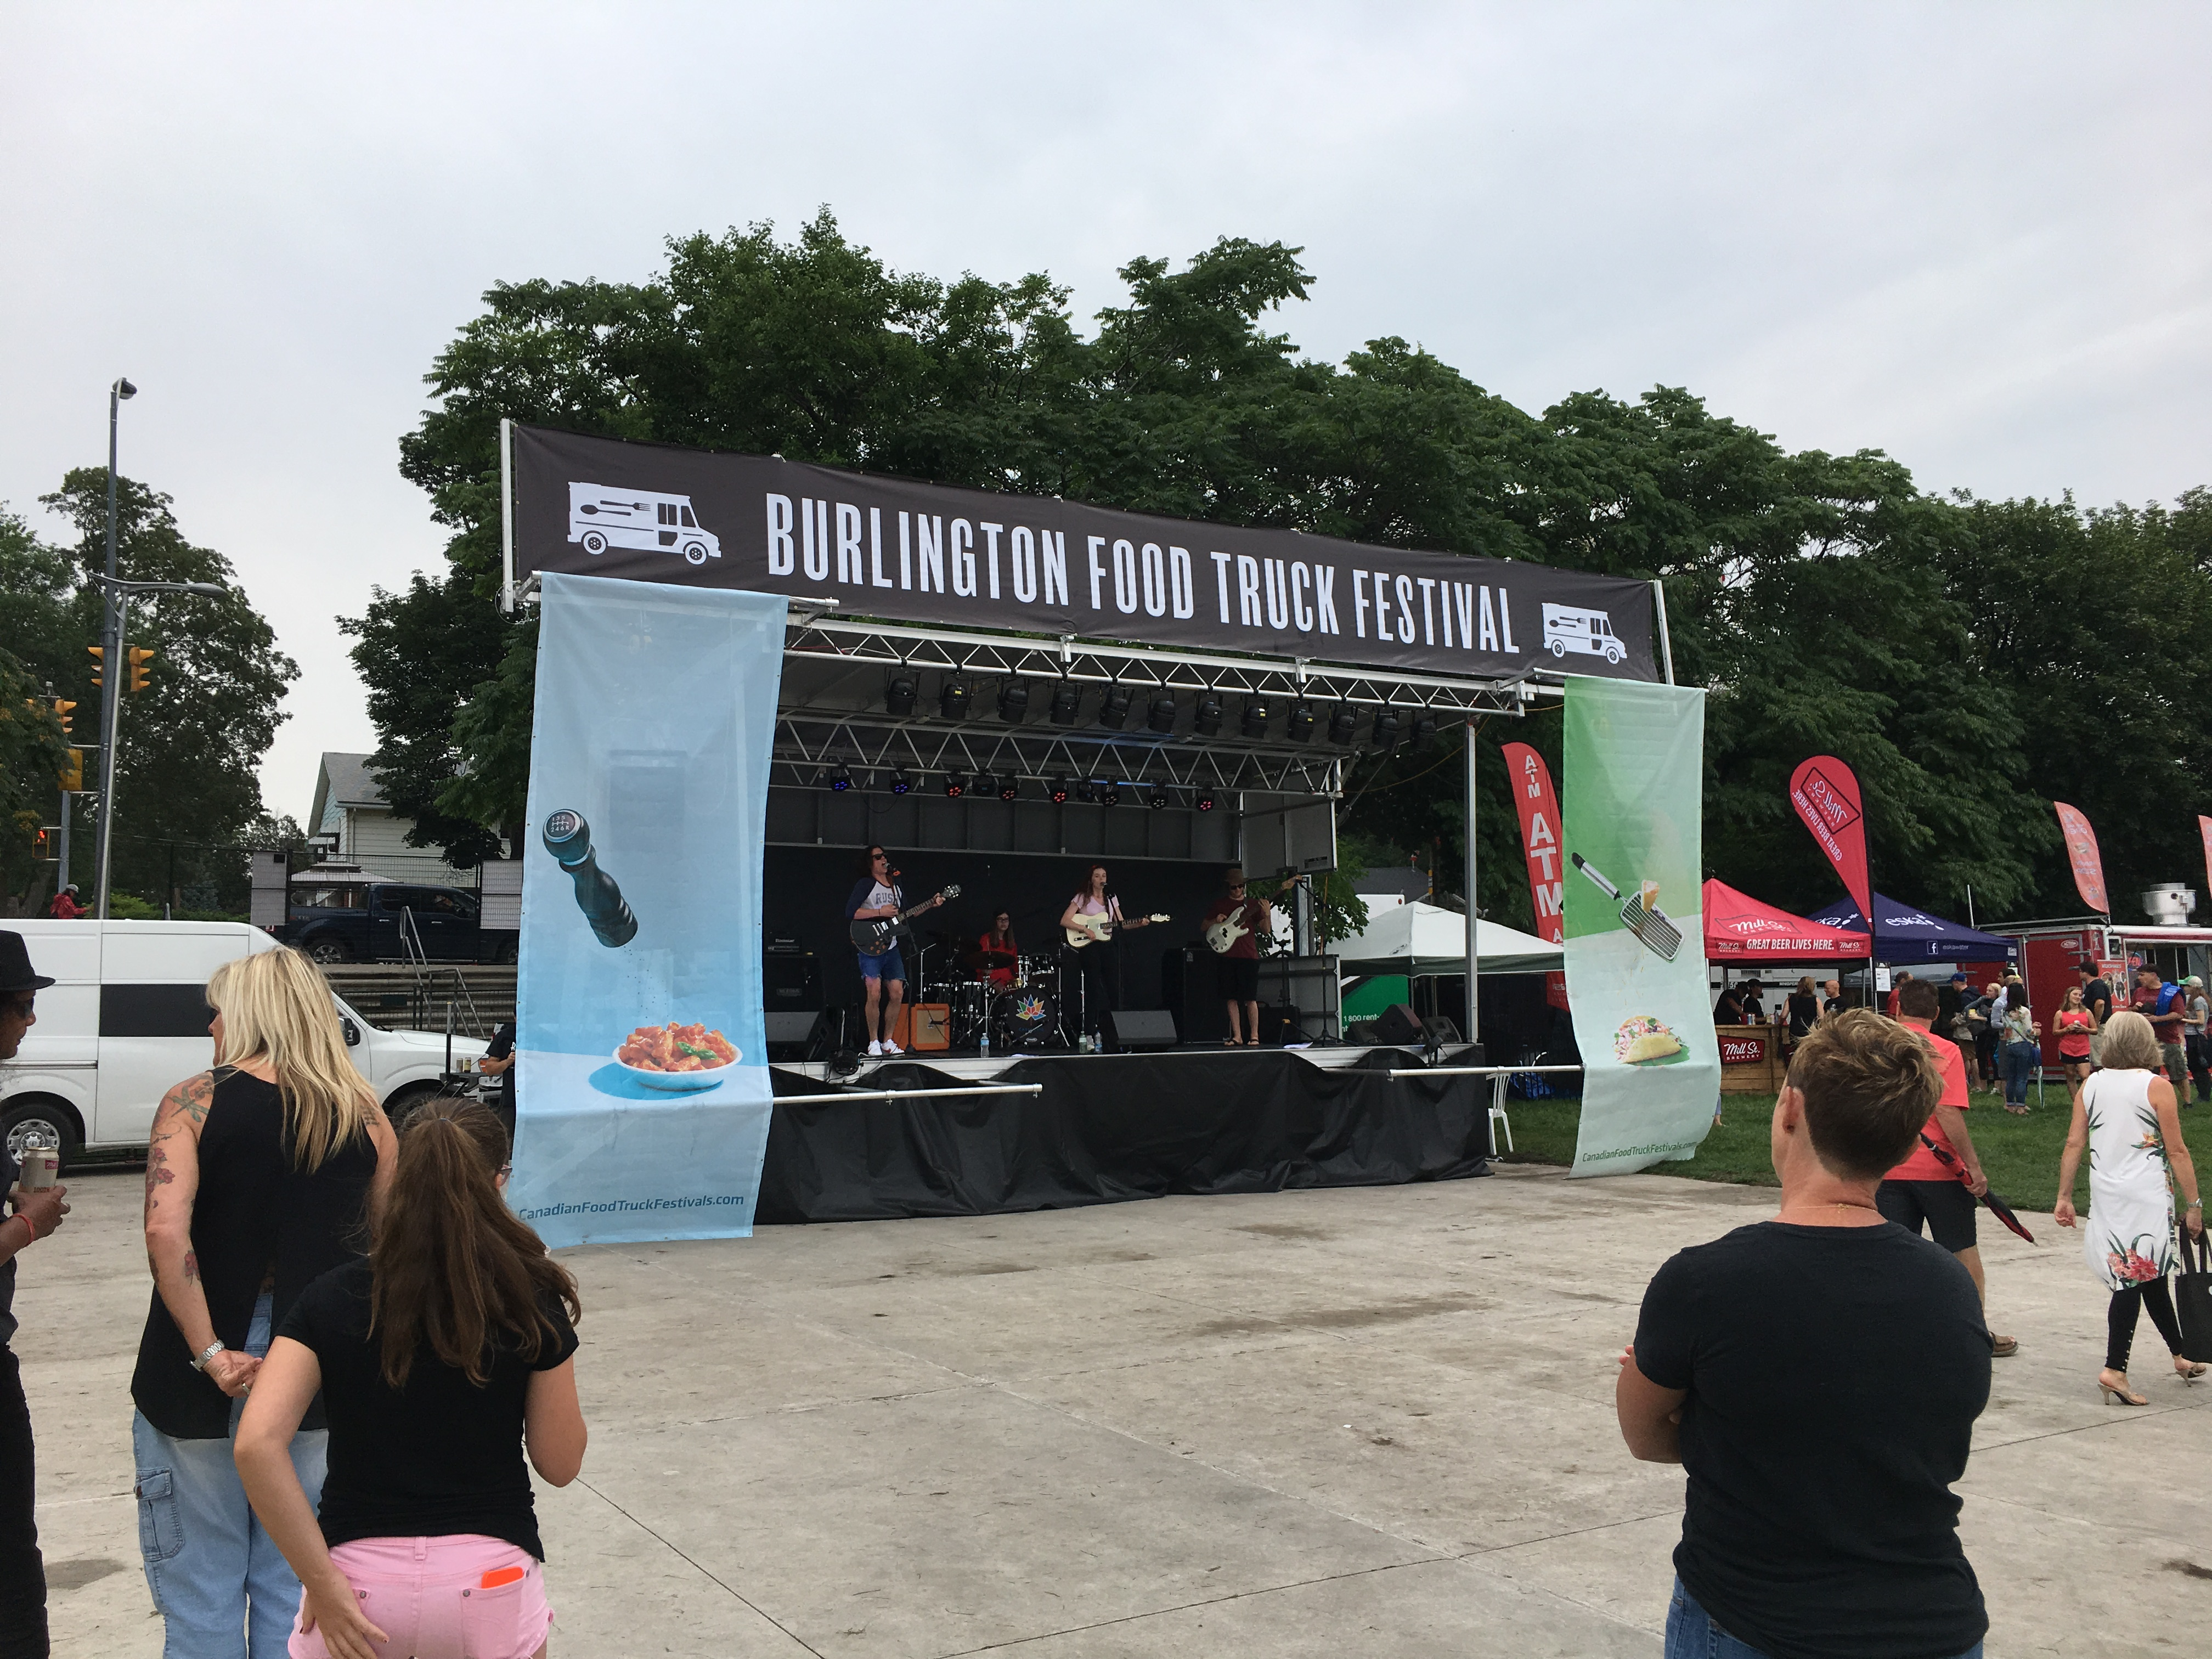 Burlington Food Truck Festival 2017